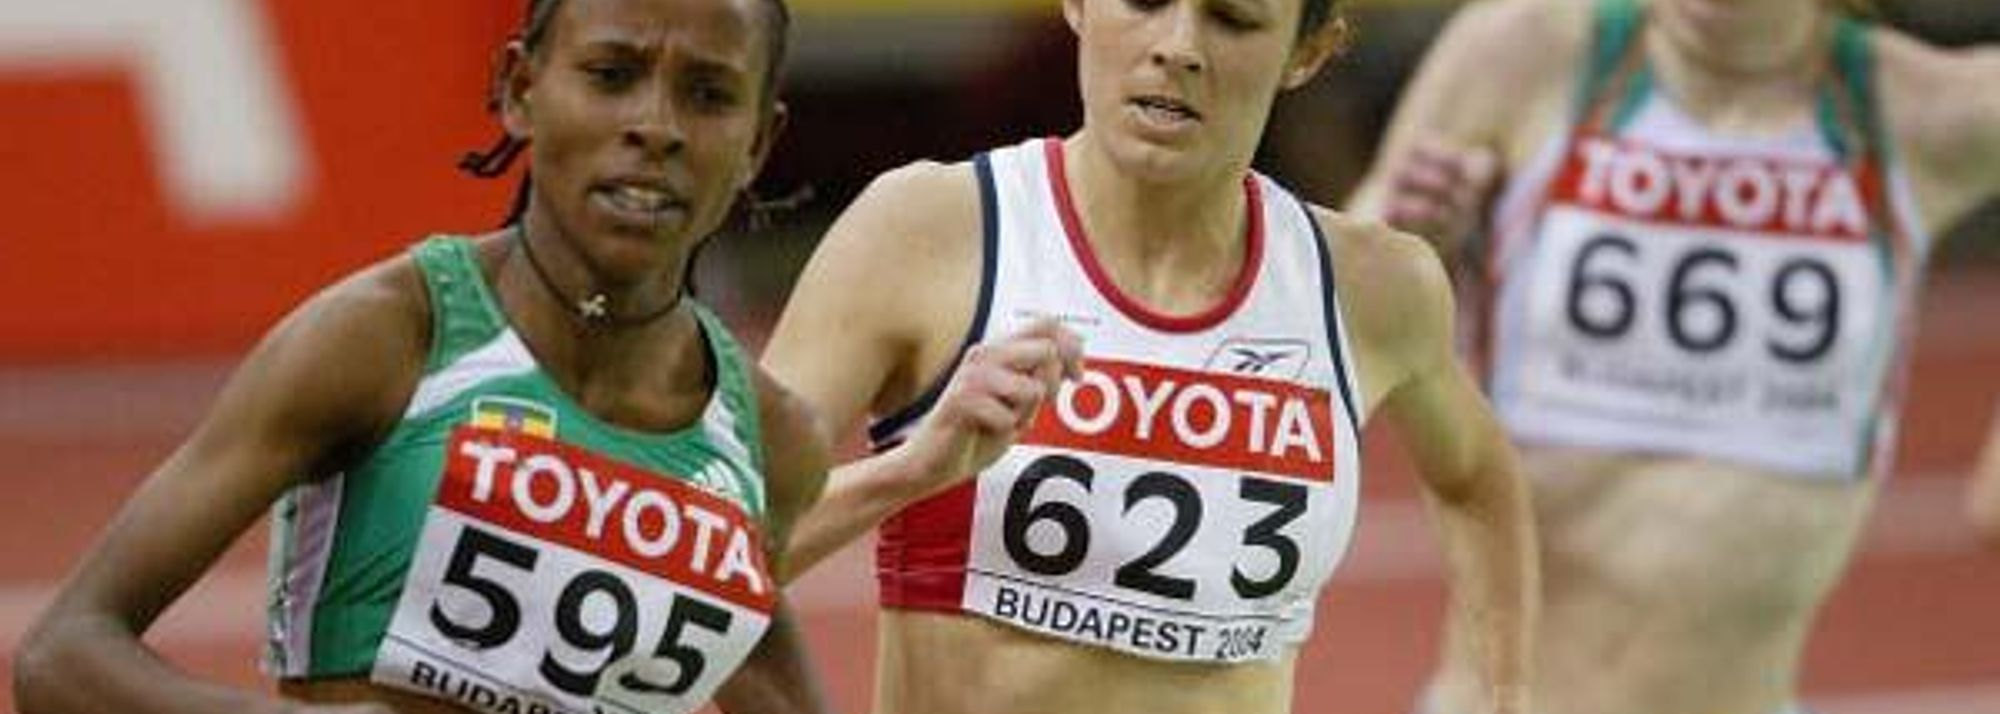 Slowish tactical 3000m races are the norm at major indoor championships but often offer great spectacles. Ken Nakamura gives his brief analysis of the respective merits of both the men's and women's 3000m at the 10th IAAF World Indoor championships in Budapest, Hungary (5 – 7 March).